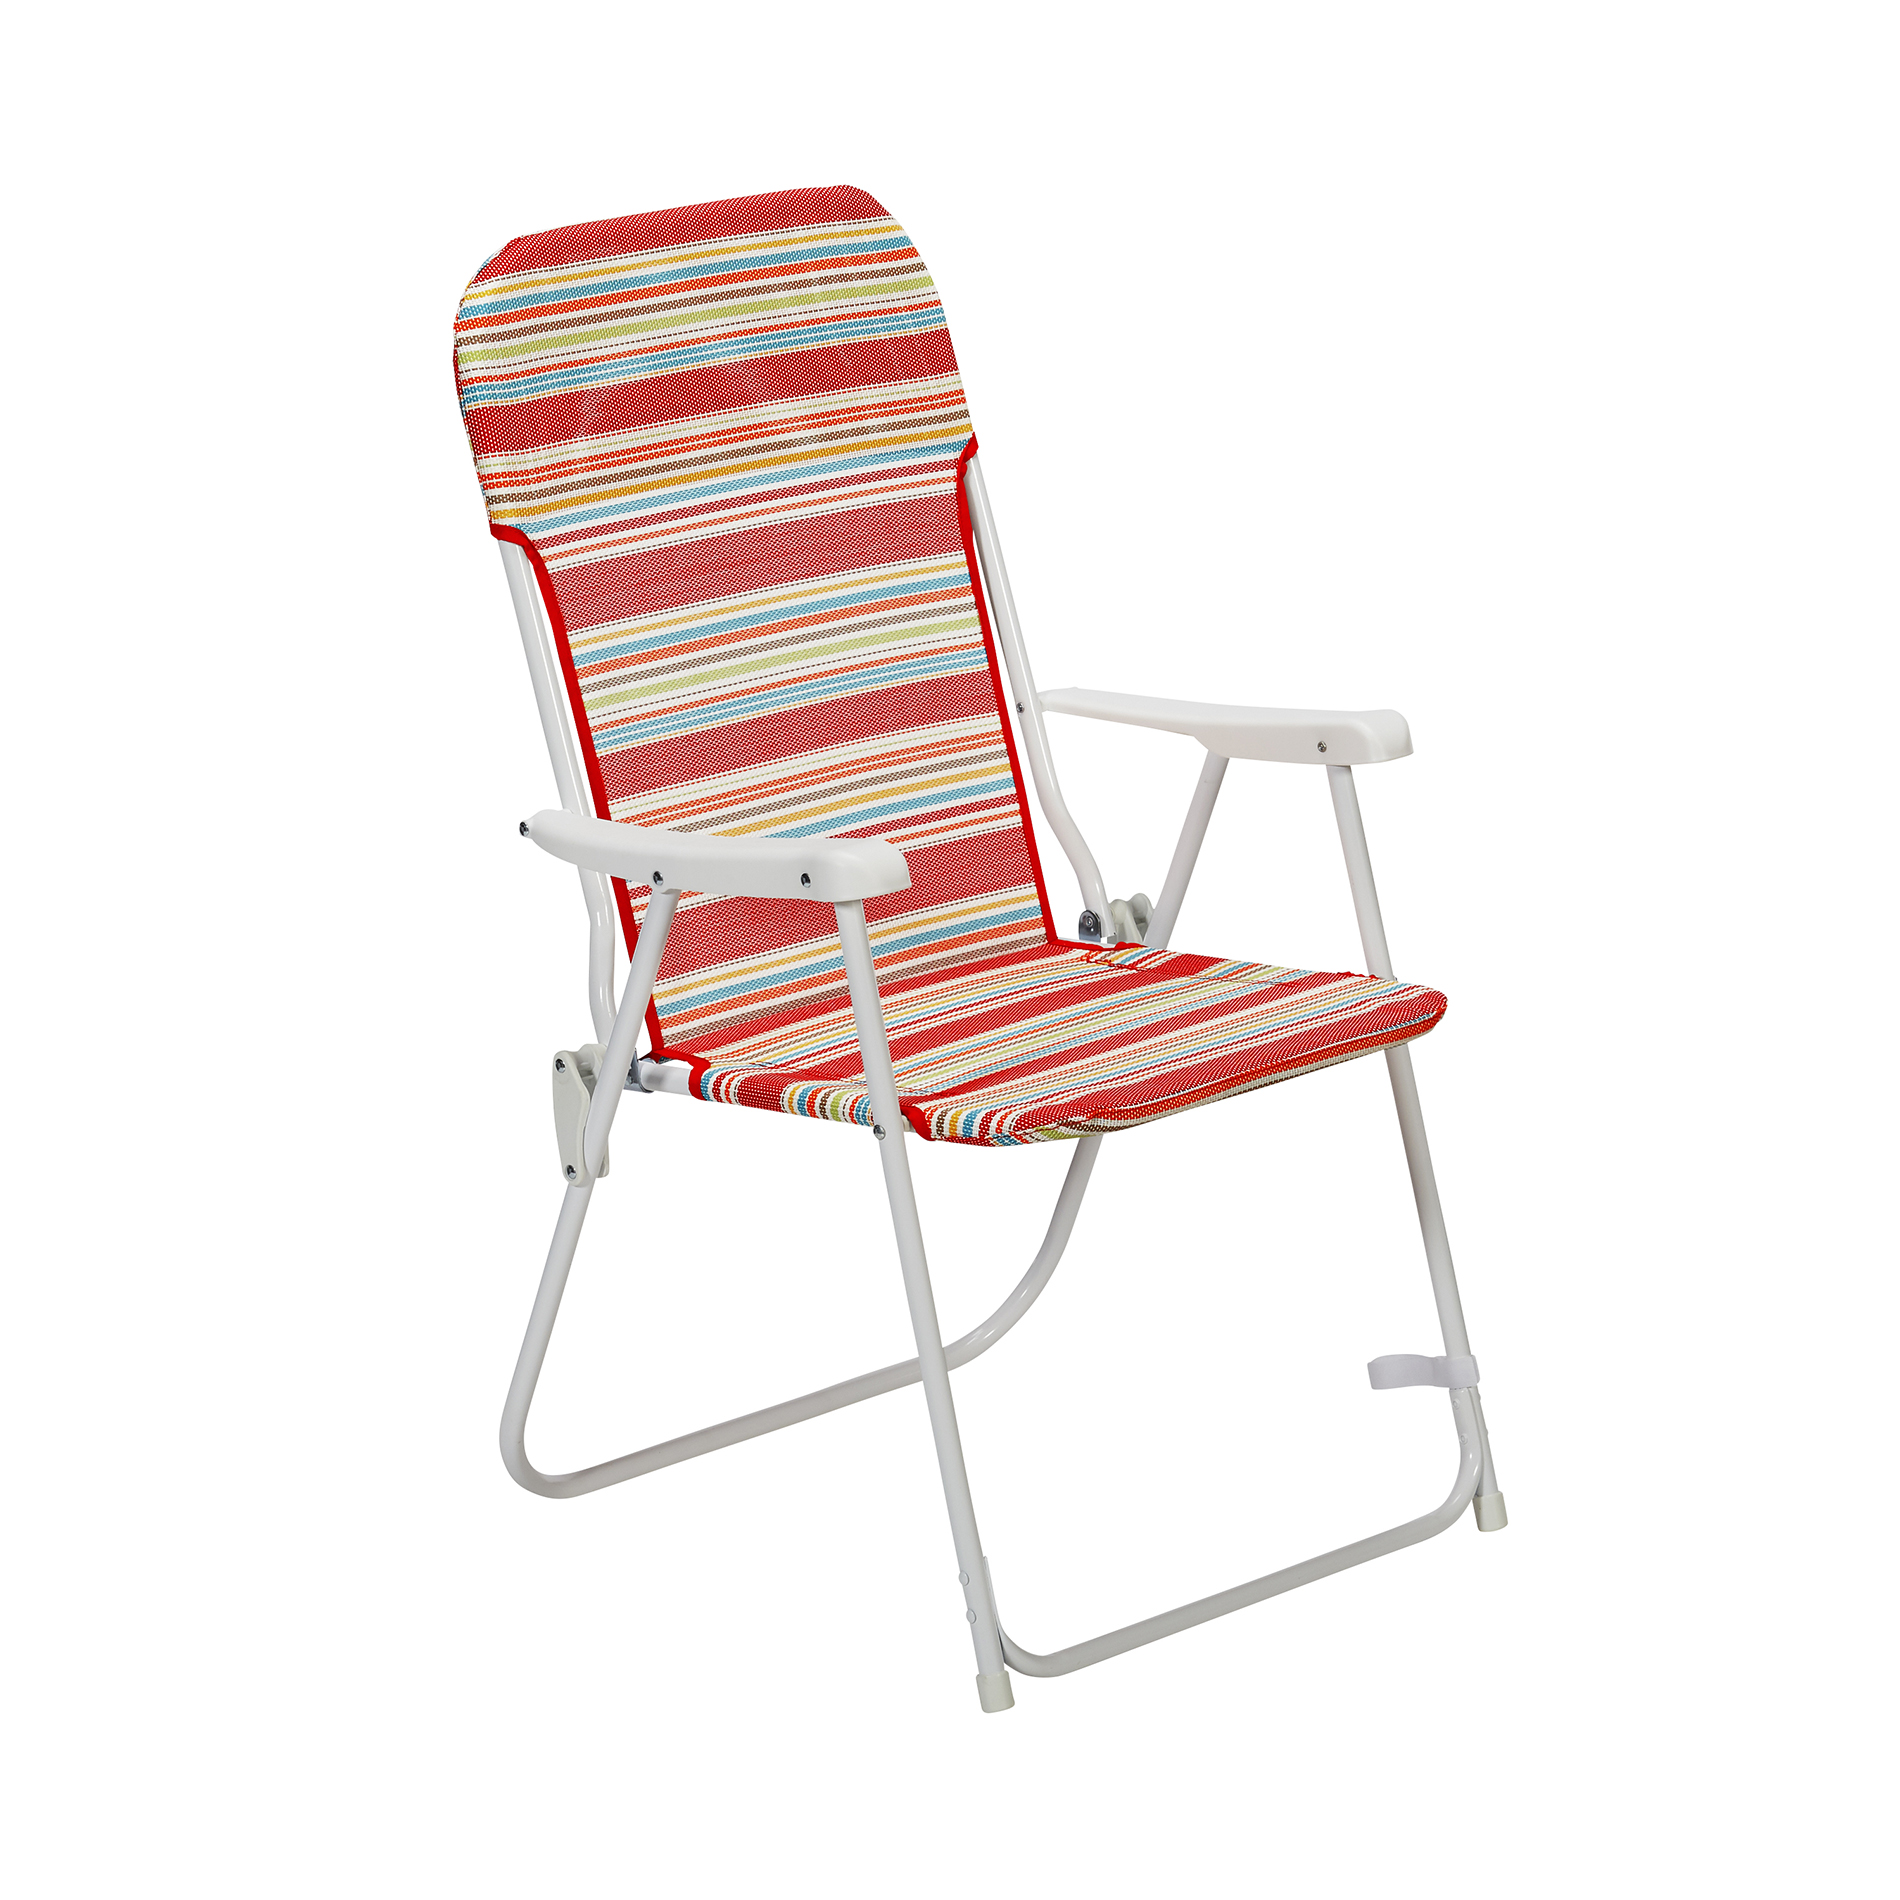 fabric outside chairs best chair for baby nursery outdoor warm stripes living